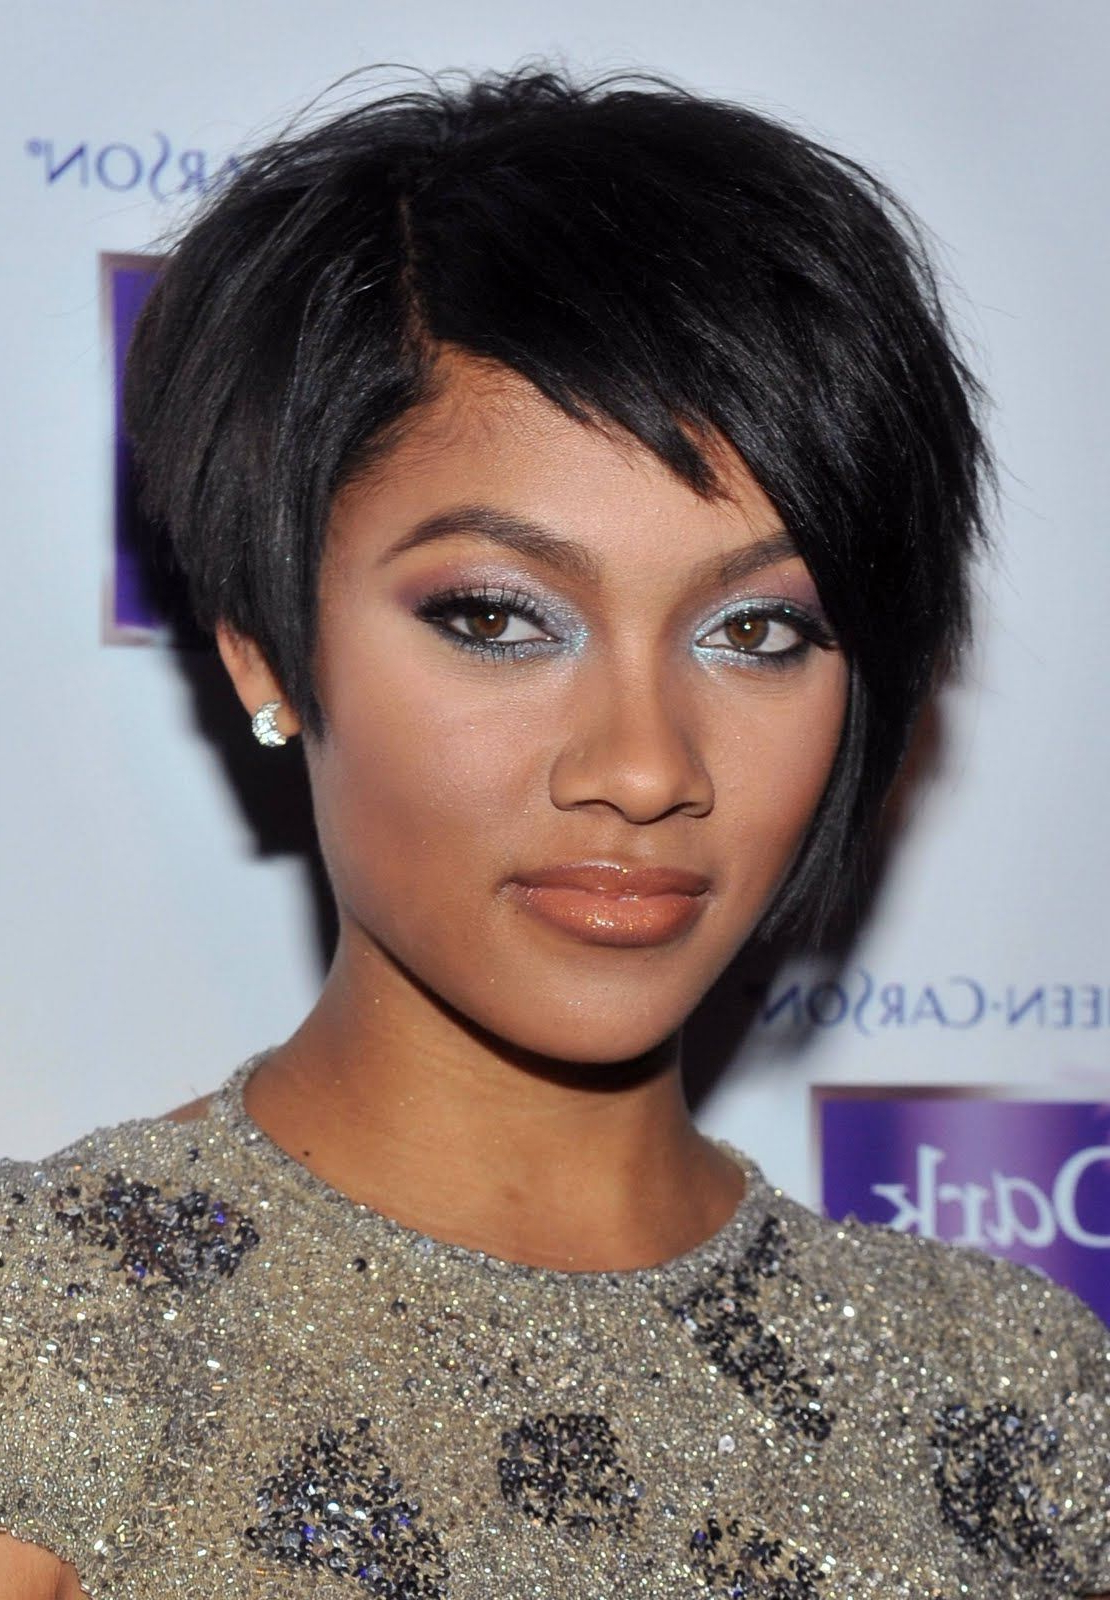 Hairstyles For Black Short Hair   Short+Black+Haircuts+ +Hairstyled Regarding Short Layered Hairstyles For Black Women (View 18 of 25)